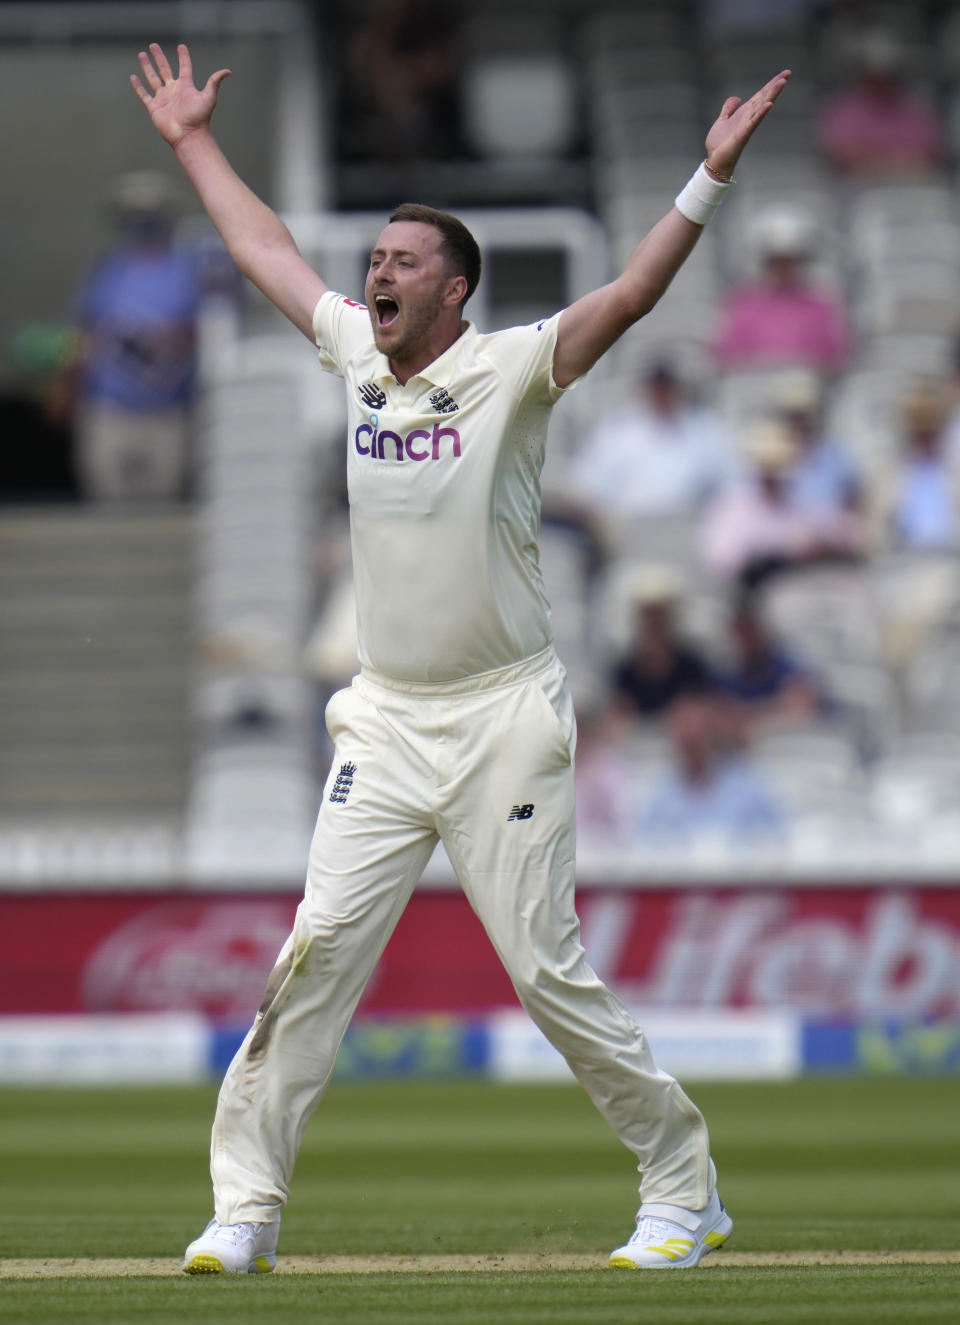 England's Ollie Robinson appeals after bowling during the first day of the Test match between England and New Zealand at Lord's cricket ground in London, Wednesday, June 2, 2021. (AP Photo/Kirsty Wigglesworth)